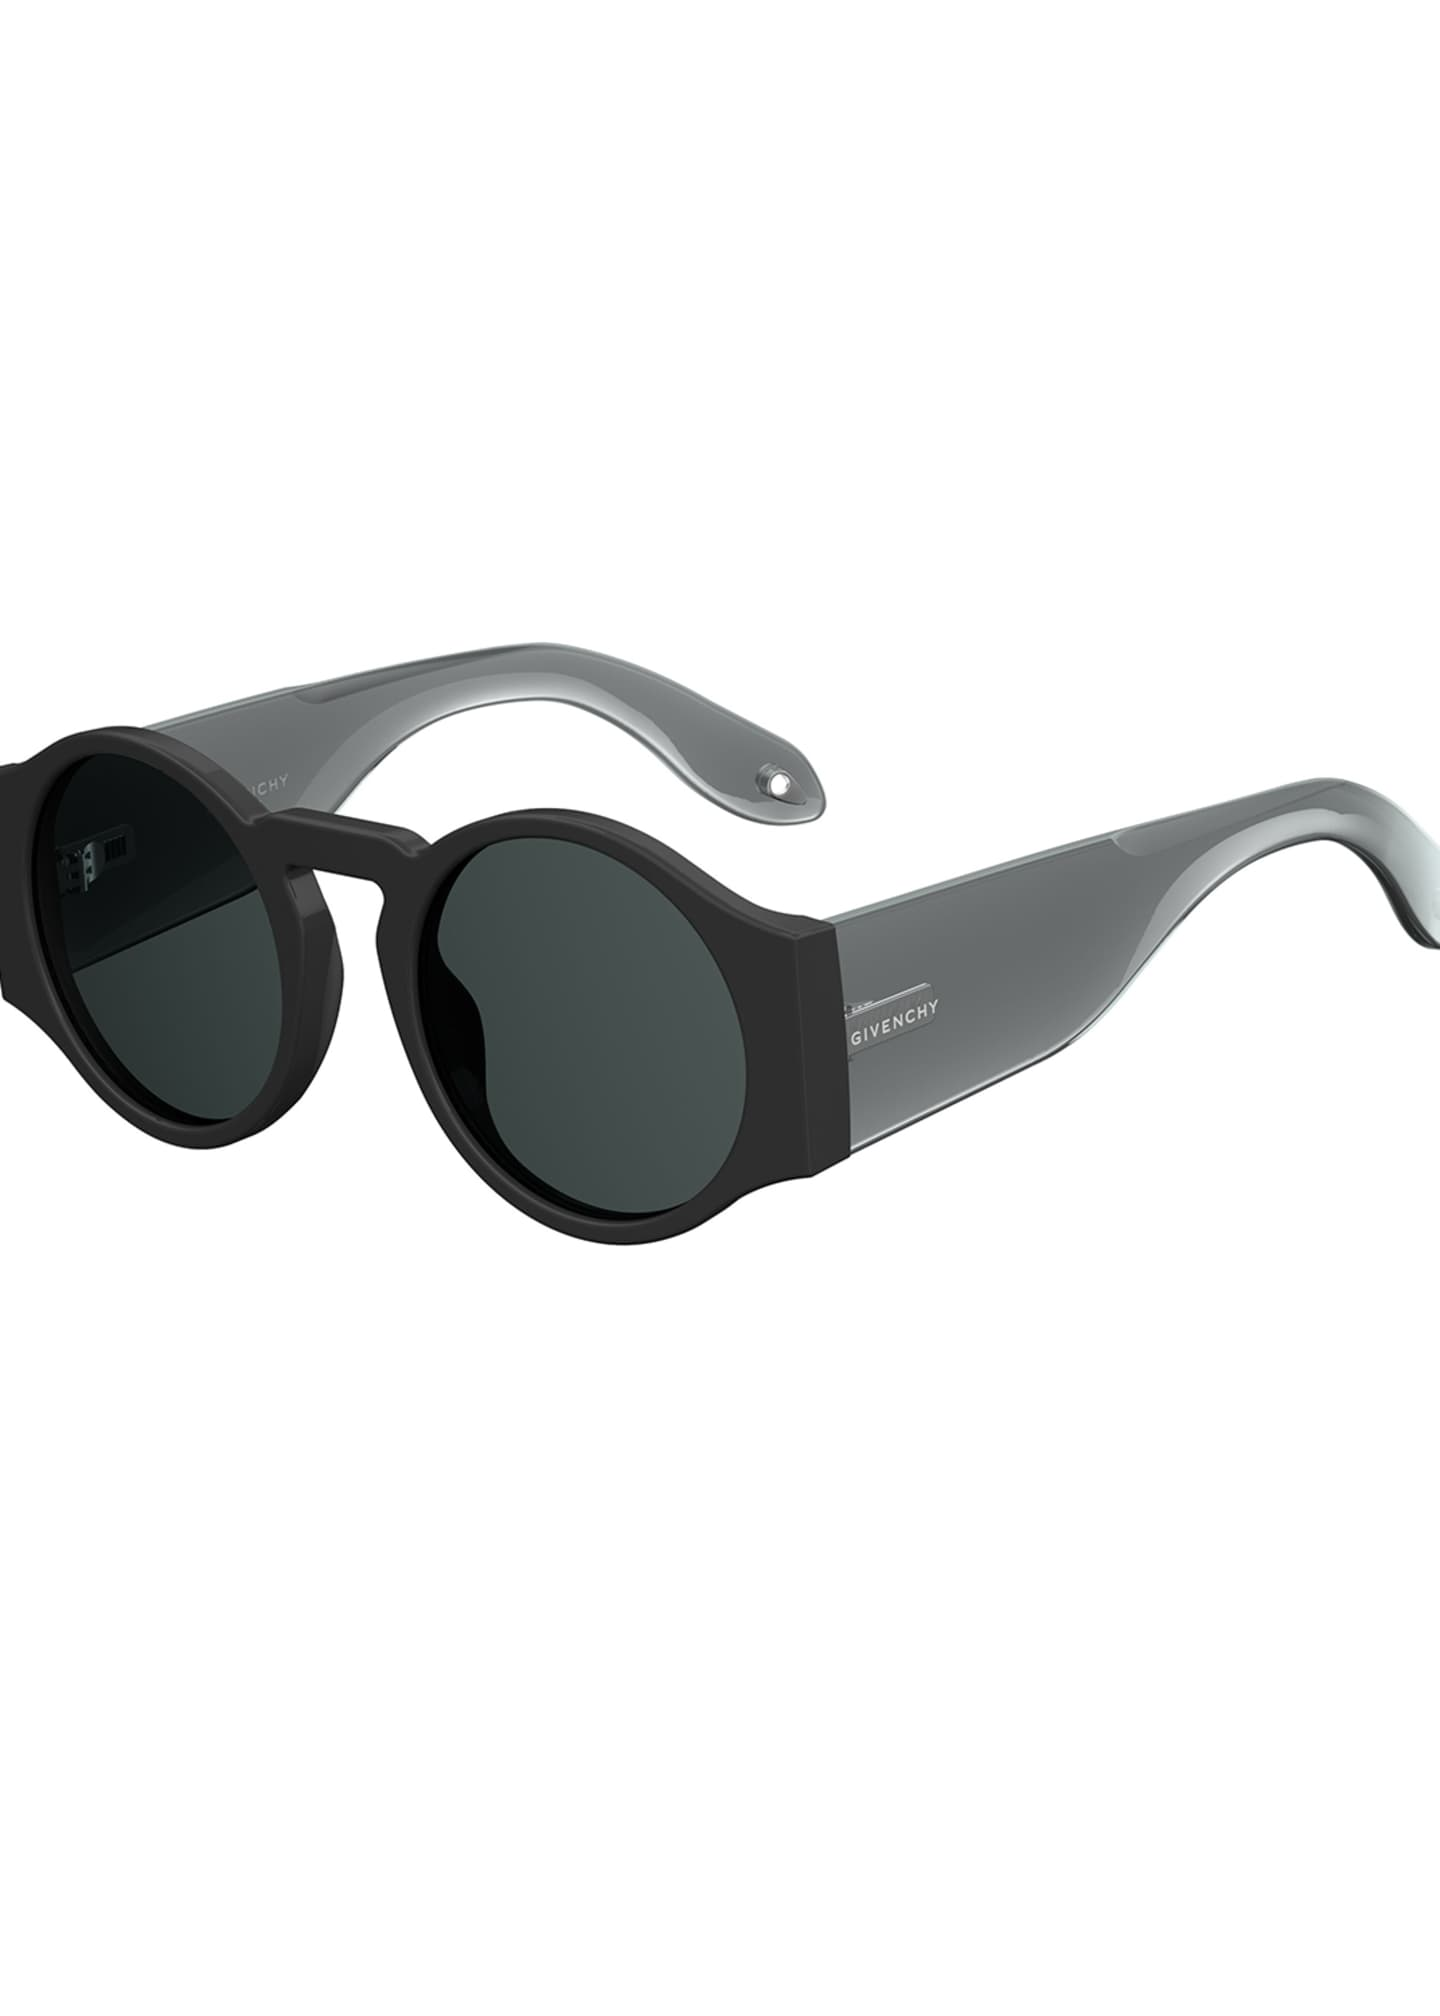 Givenchy Round Wrap-Style Sunglasses